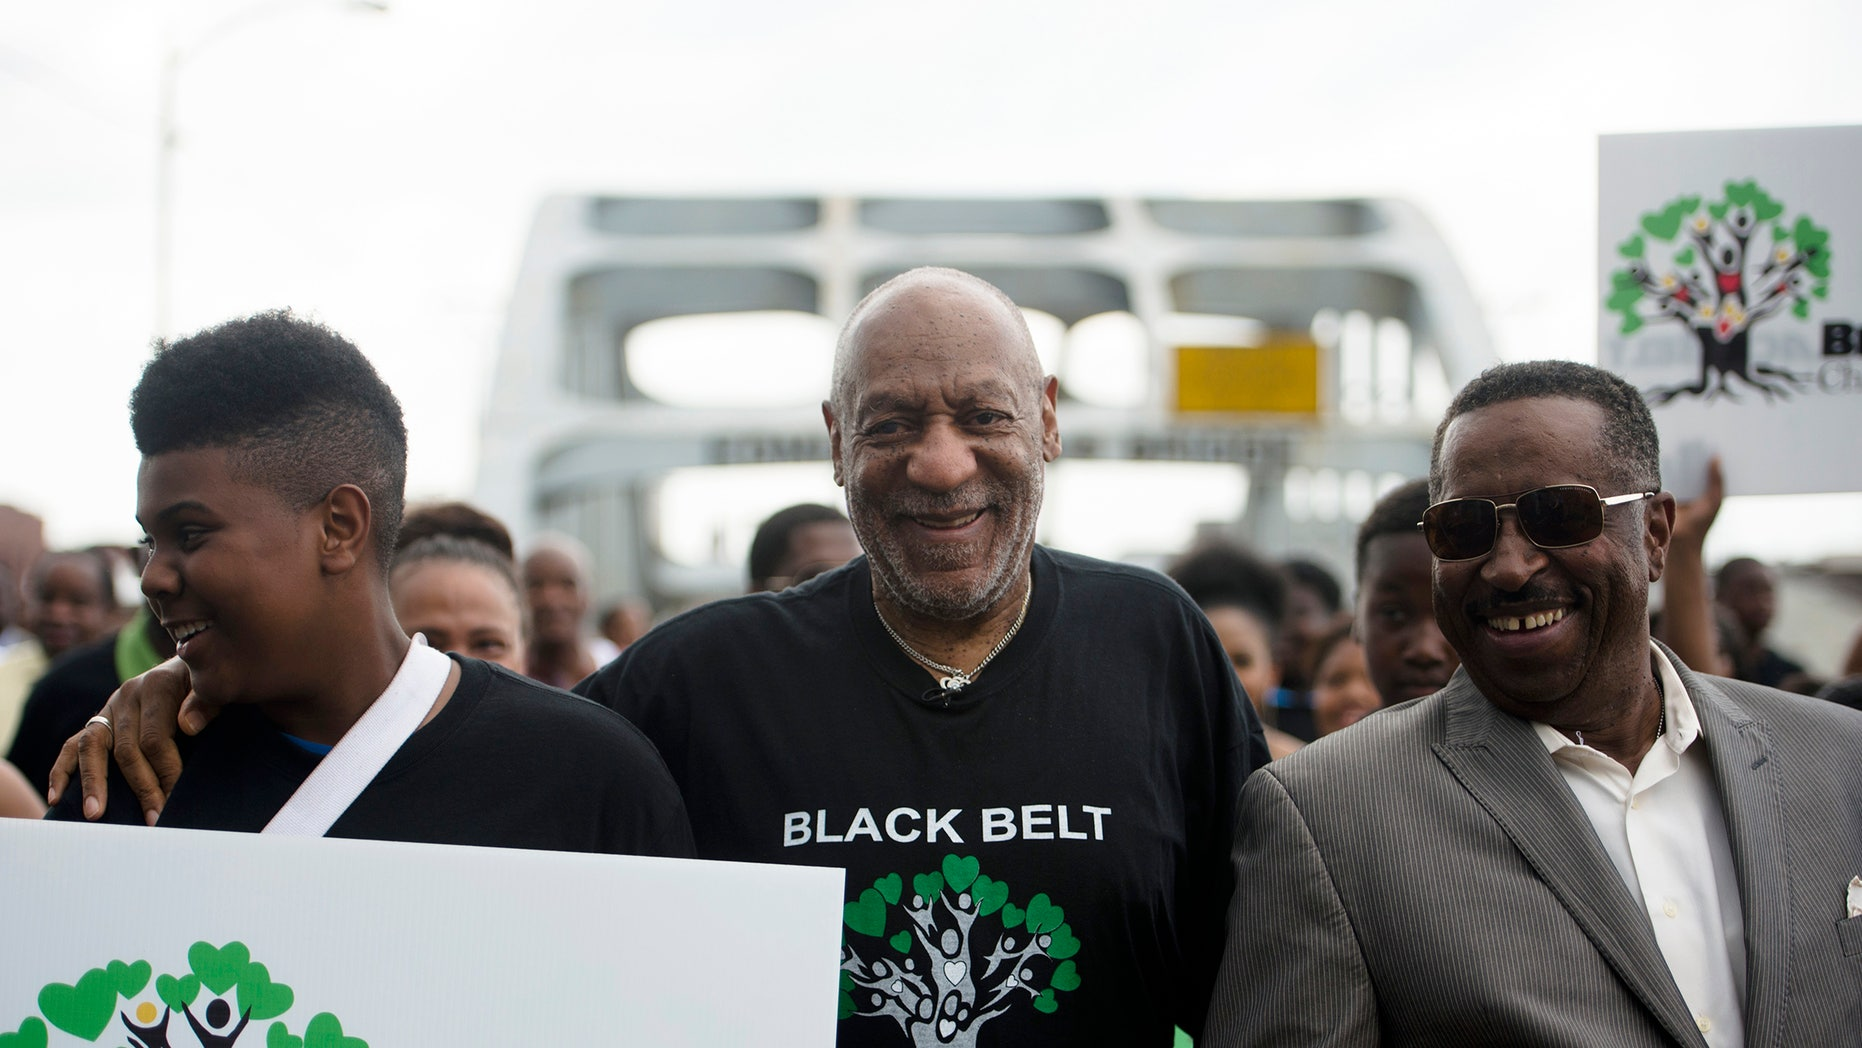 """May 15, 2015. Bill Cosby, center, walks over the Edmund Pettus Bridge with Nysean Perkins, left, and Gregory Calhoun, Friday, May 15, 2015, in Selma, Ala. The march was arranged by The Black Belt Community Foundation as part of their """"Black Belt Children Matter"""" campaign."""